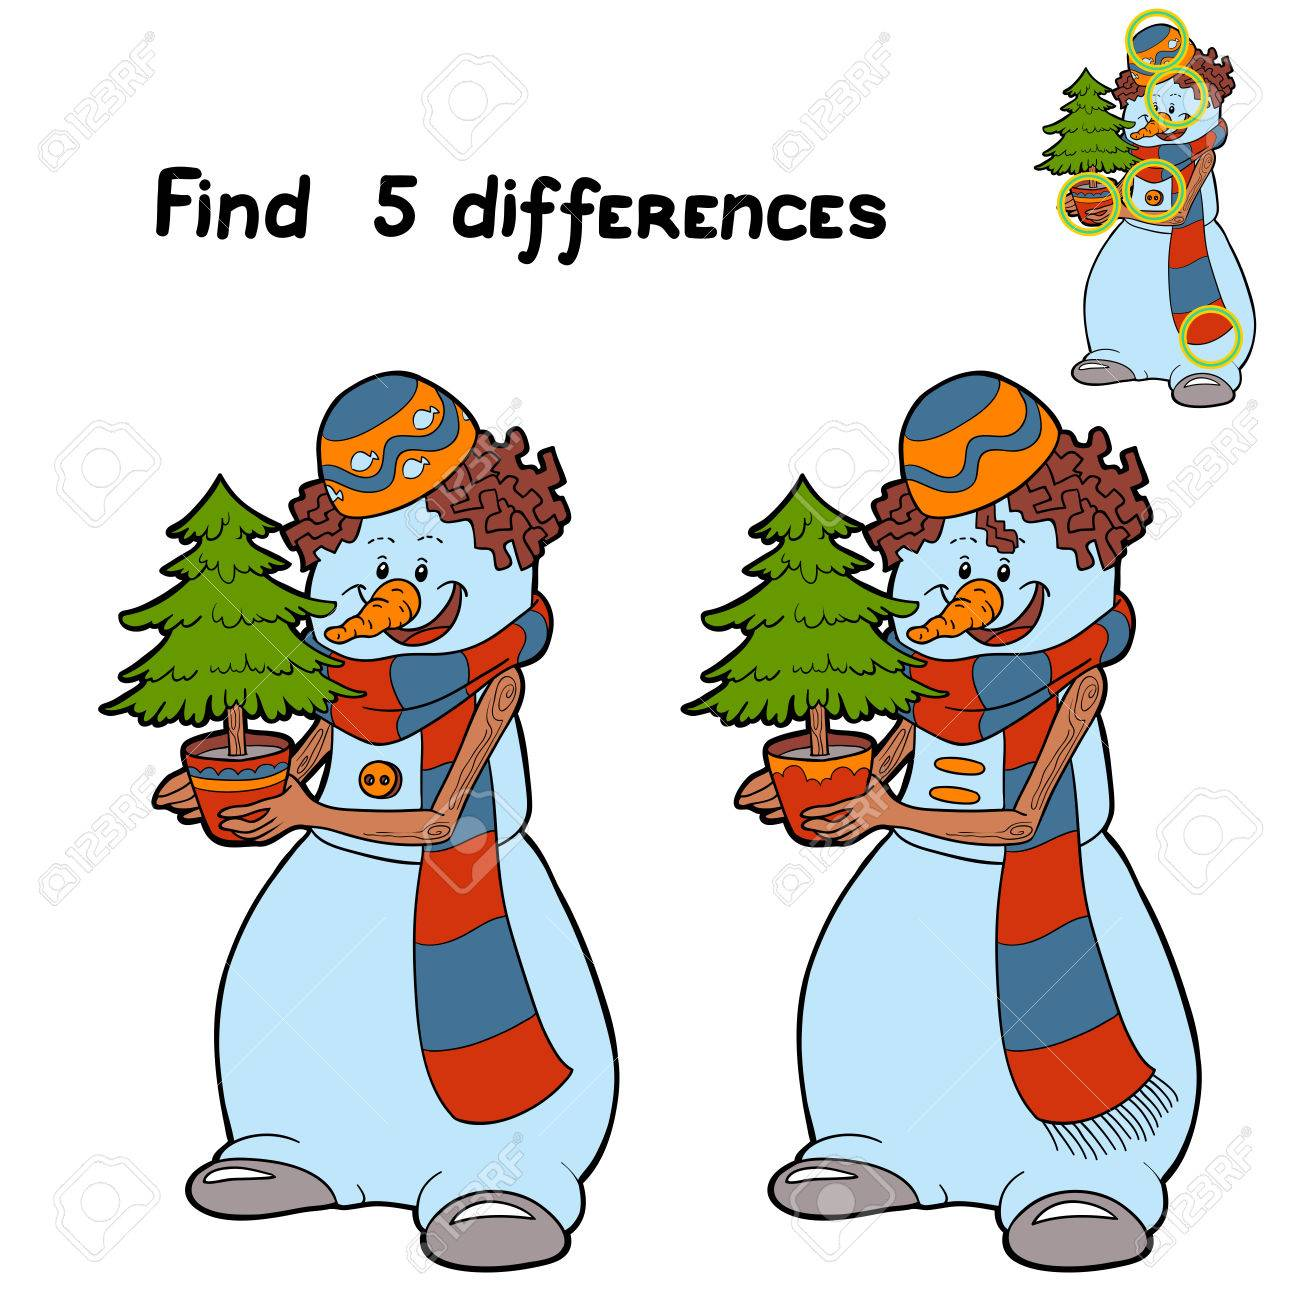 Find 5 differences (snowman) - 33283242